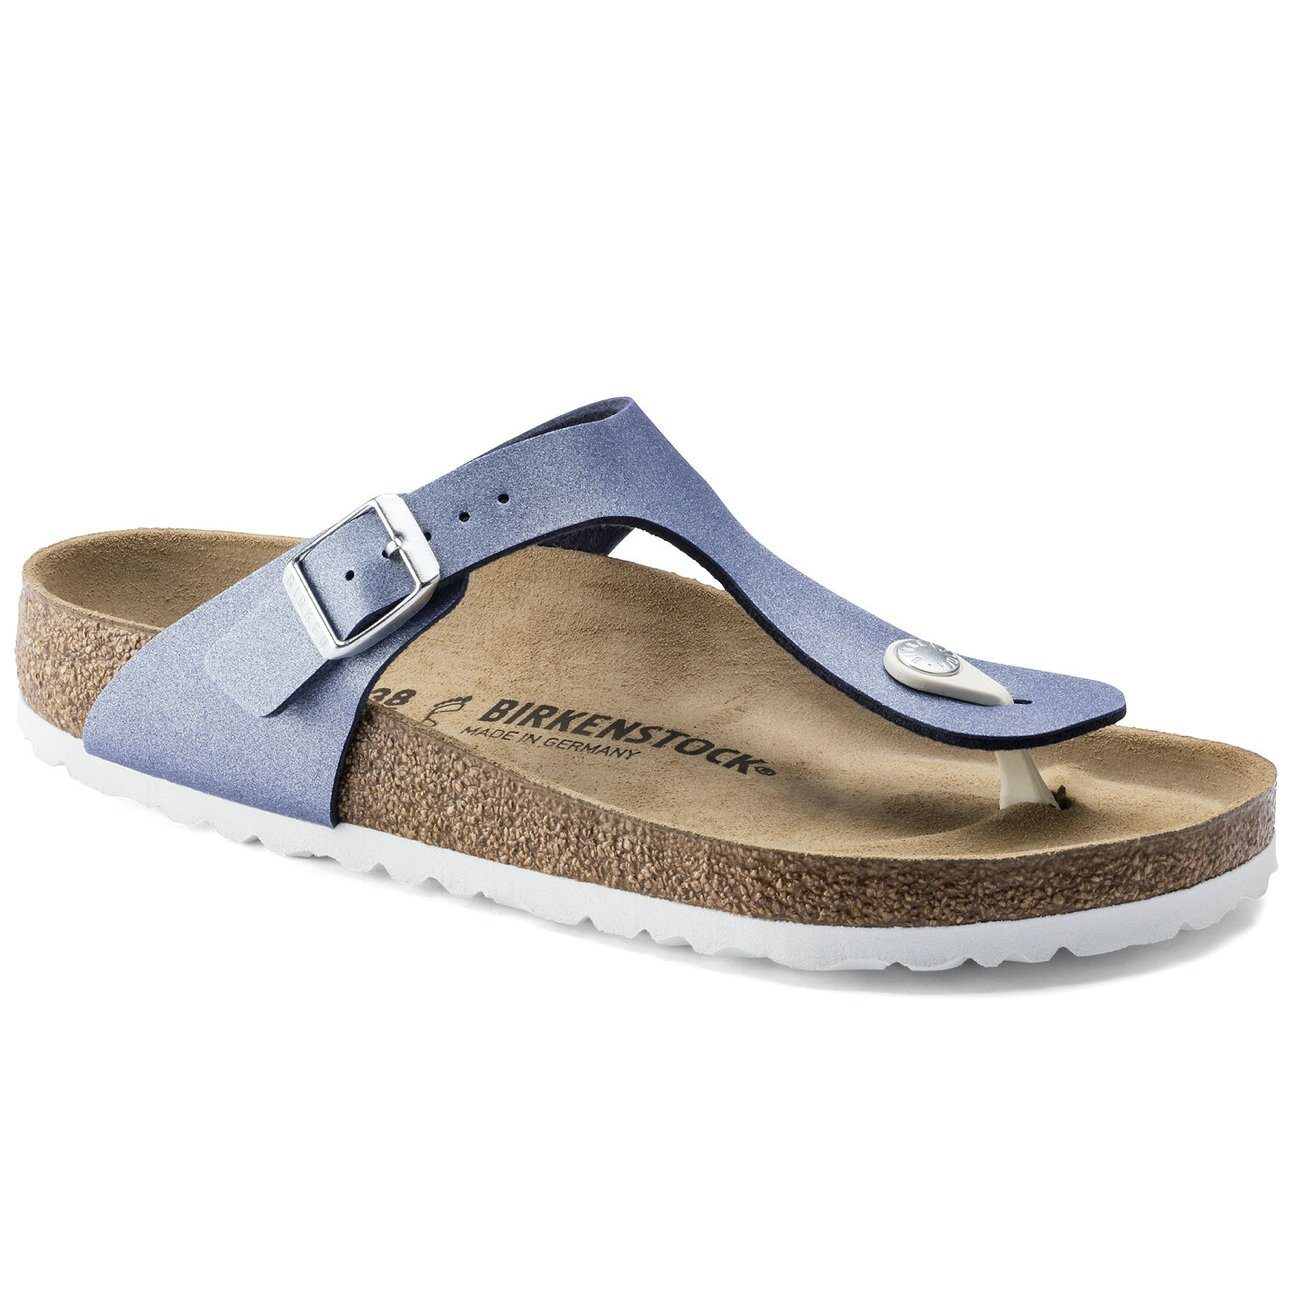 Birkenstock Seasonal, Gizeh, Birko-Flor, Regular Fit, Azure Blue Sandals Birkenstock Seasonal Azure Blue 35